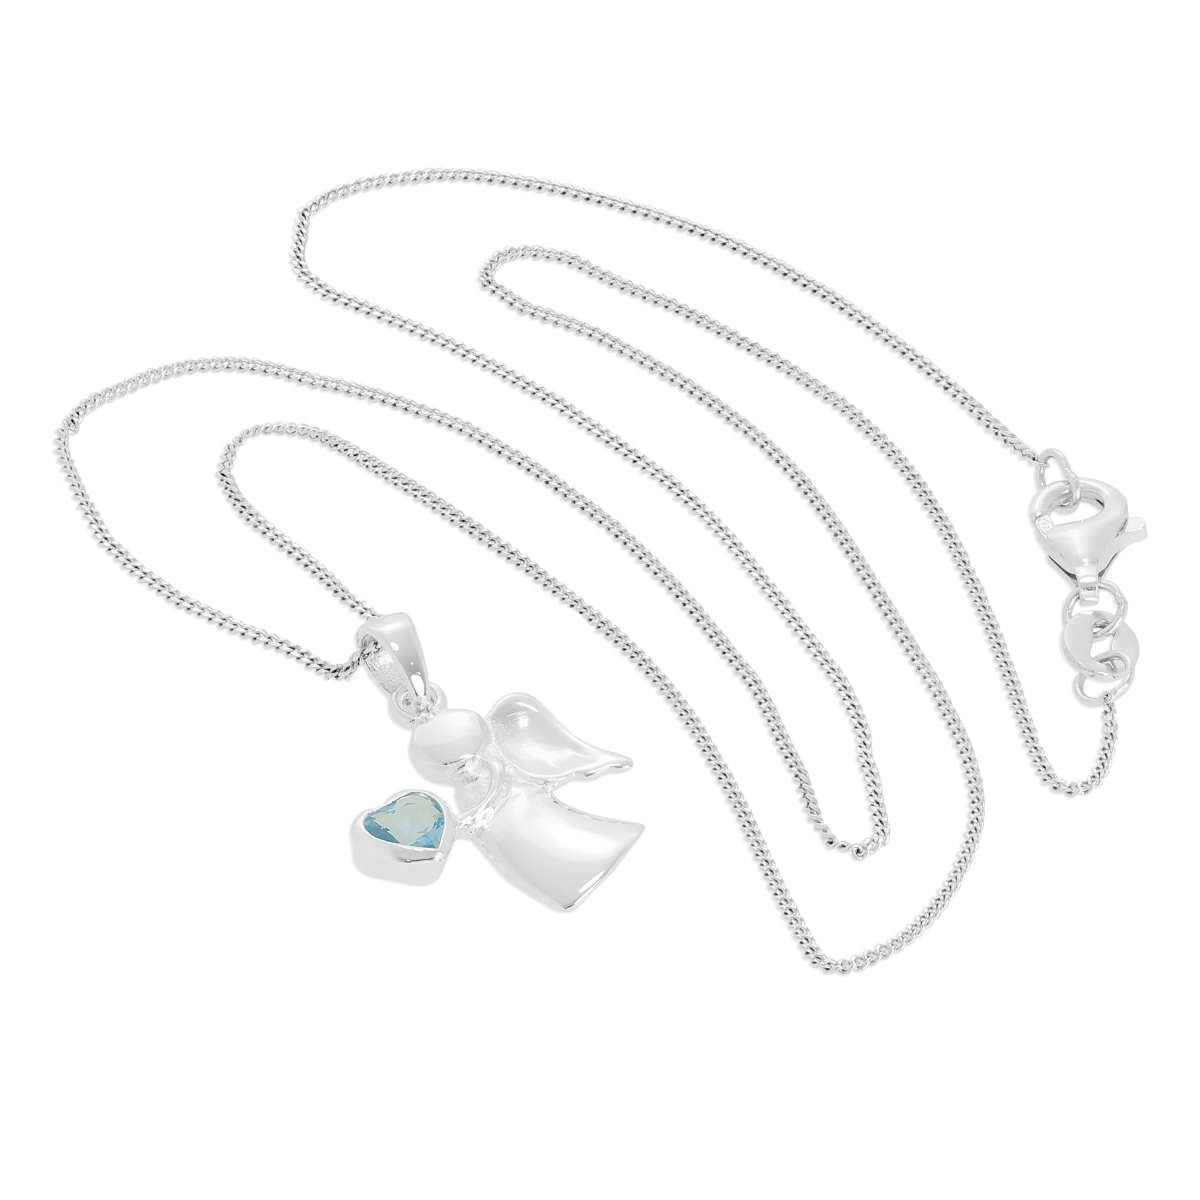 Alterative image for Sterling Silver & Aquamarine CZ Crystal March Birthstone Angel Pendant Necklace 14 - 32 Inches